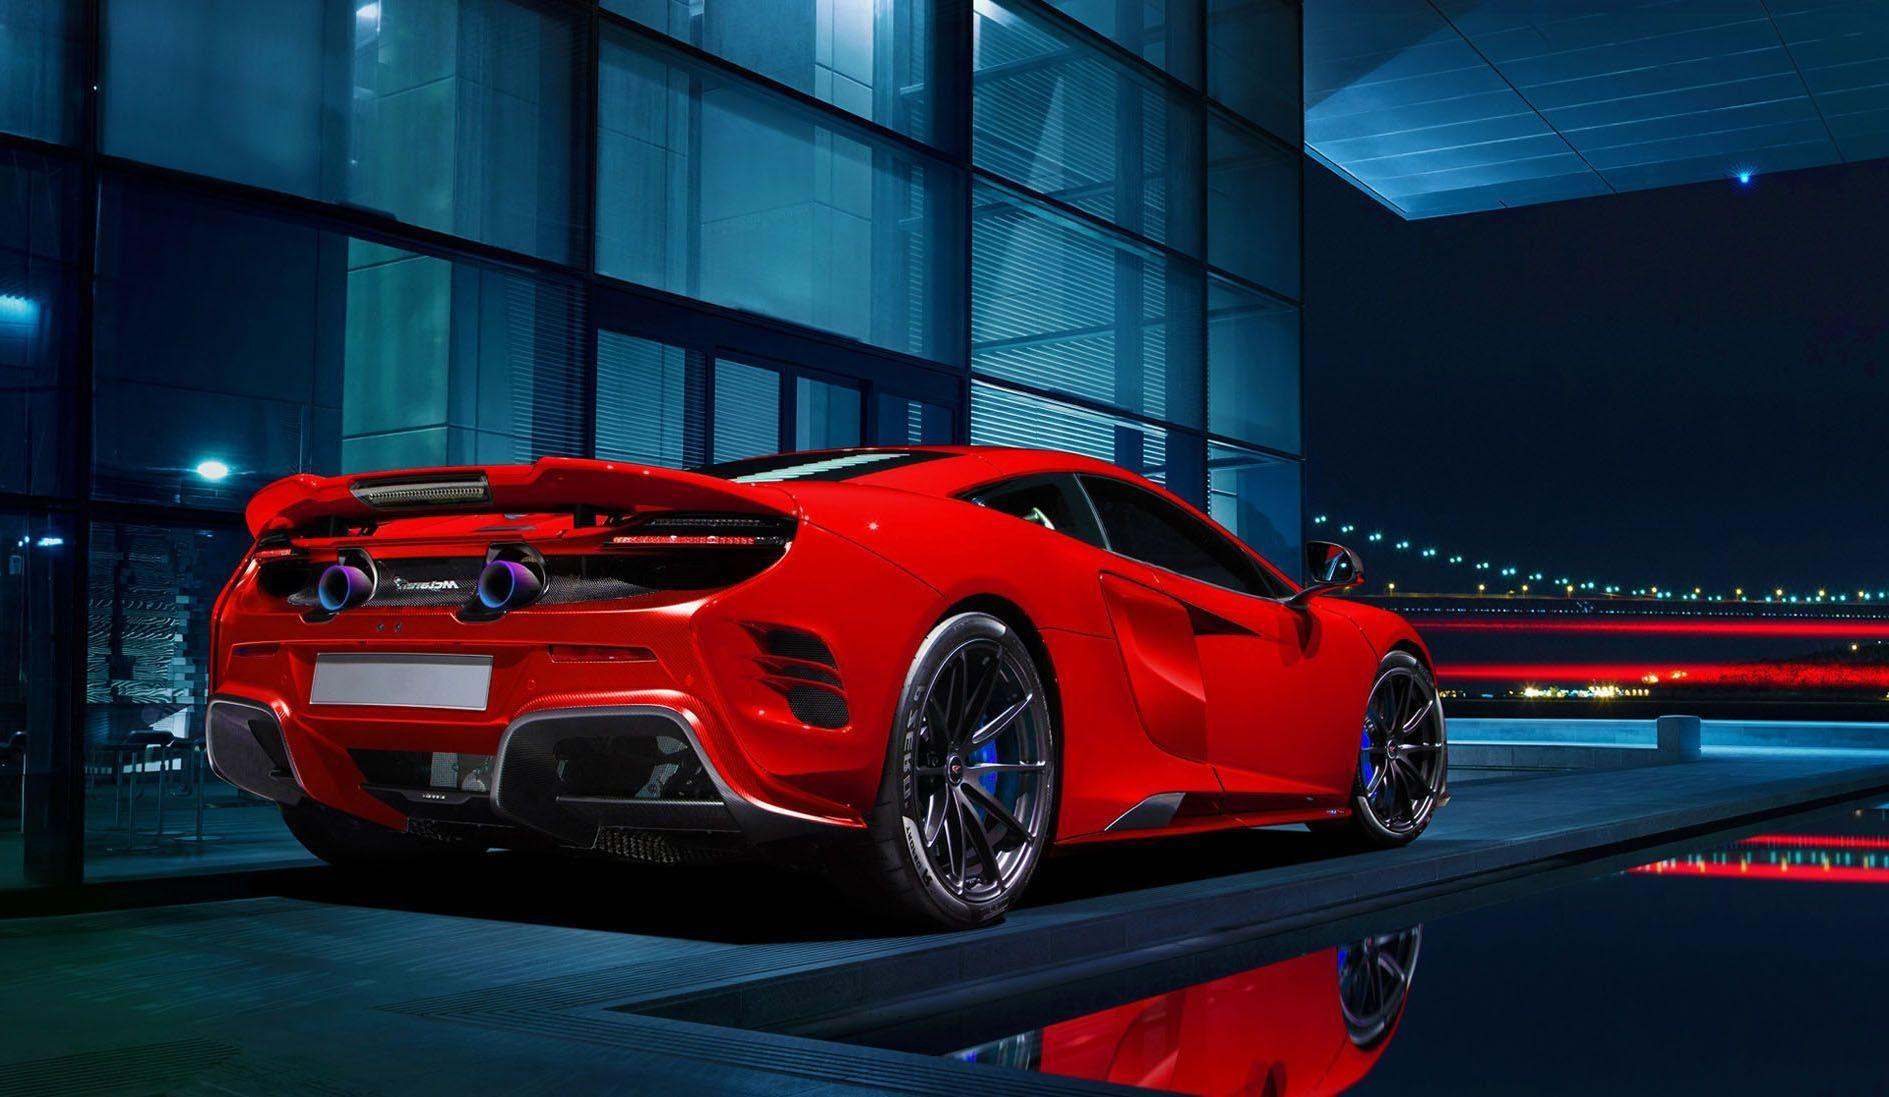 Cool Cars 2016 Wallpapers Wallpaper Cave